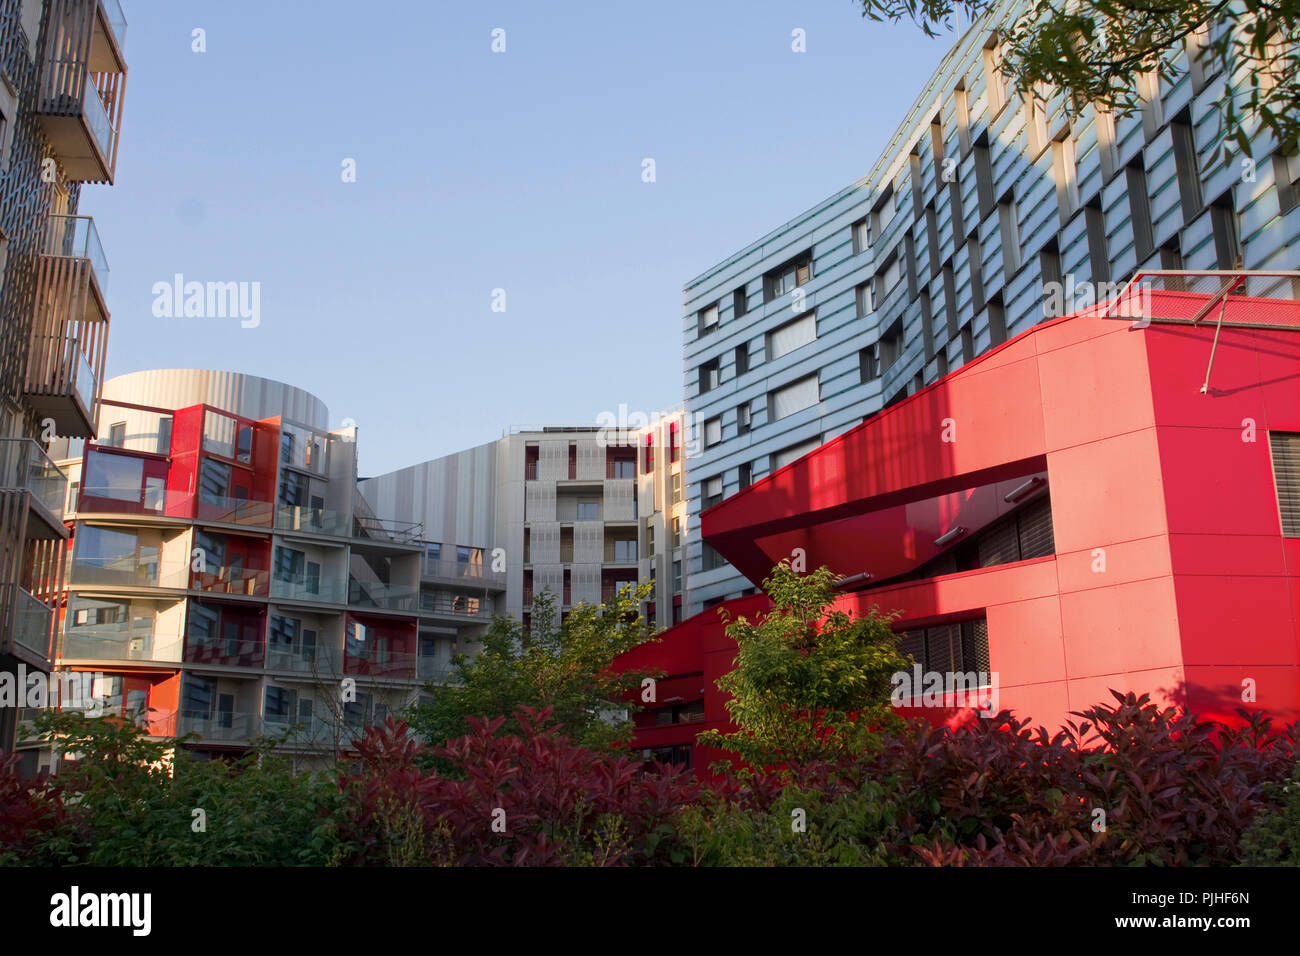 France, Paris, Parc Clichy-Batignolles-Martin Luther King, new buildings of an eco-district Stock Photo